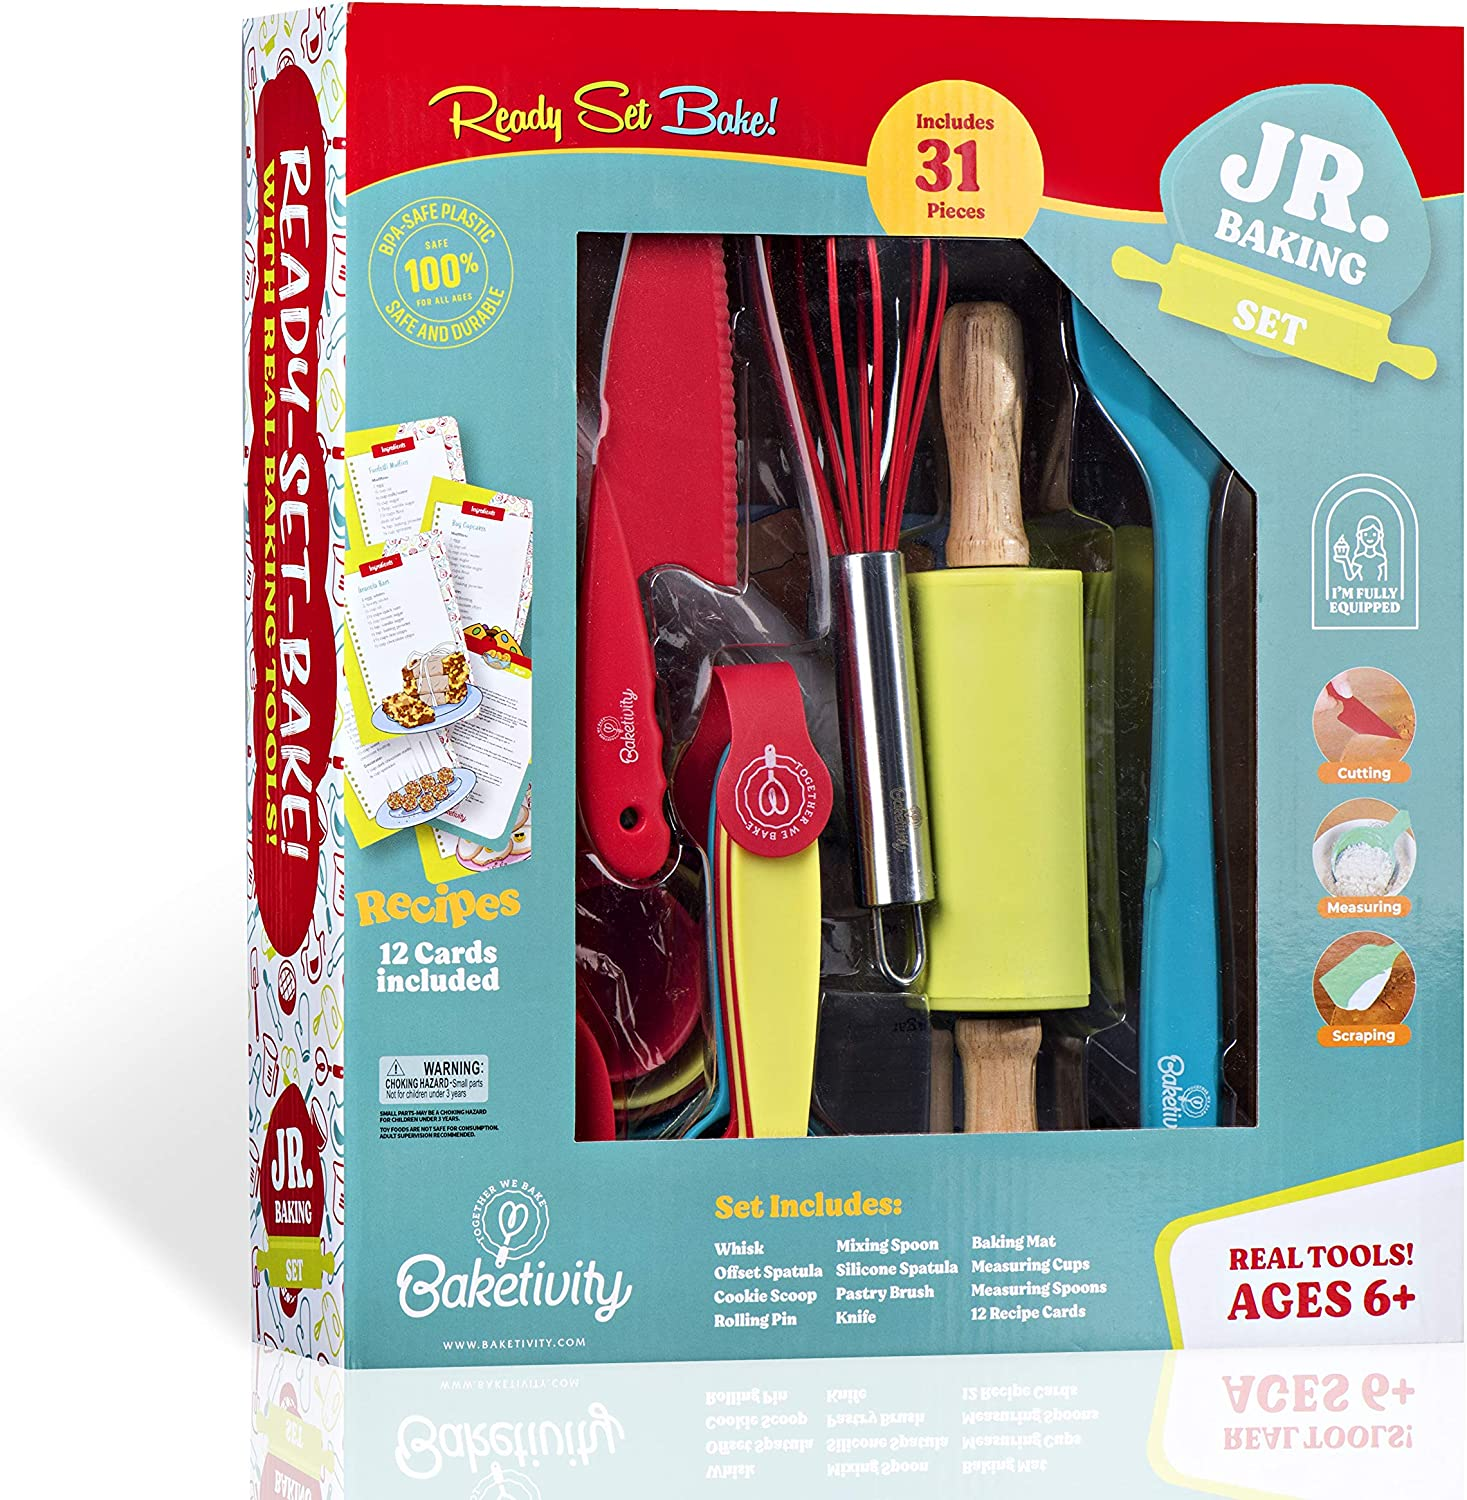 Ultimate Baking Gift Set for Girls Boys Toddlers Complete Baking Kit with Real Baking Tools for Kids Ages 6 and Up Junior Chefs Baketivity 31-Piece Kids Baking Set with 12 Free Recipe Cards